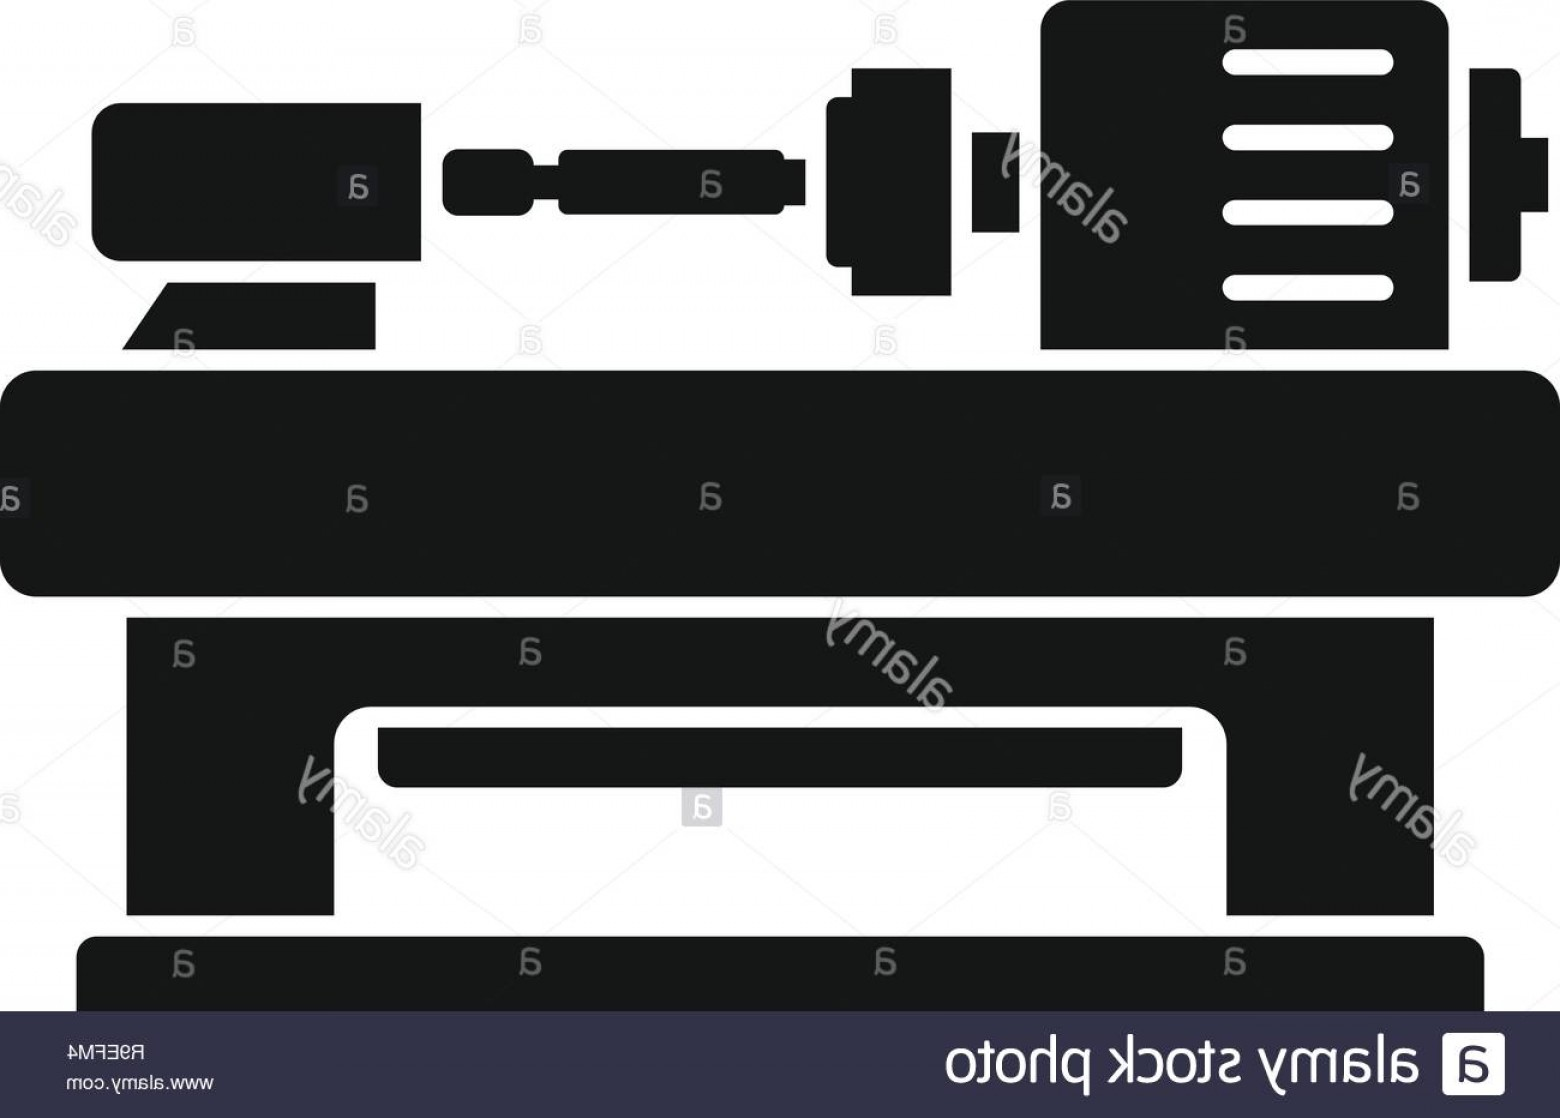 Vector Can Trim White: Trim Carpentry Icon Simple Illustration Of Trim Carpentry Vector Icon For Web Design Isolated On White Background Image